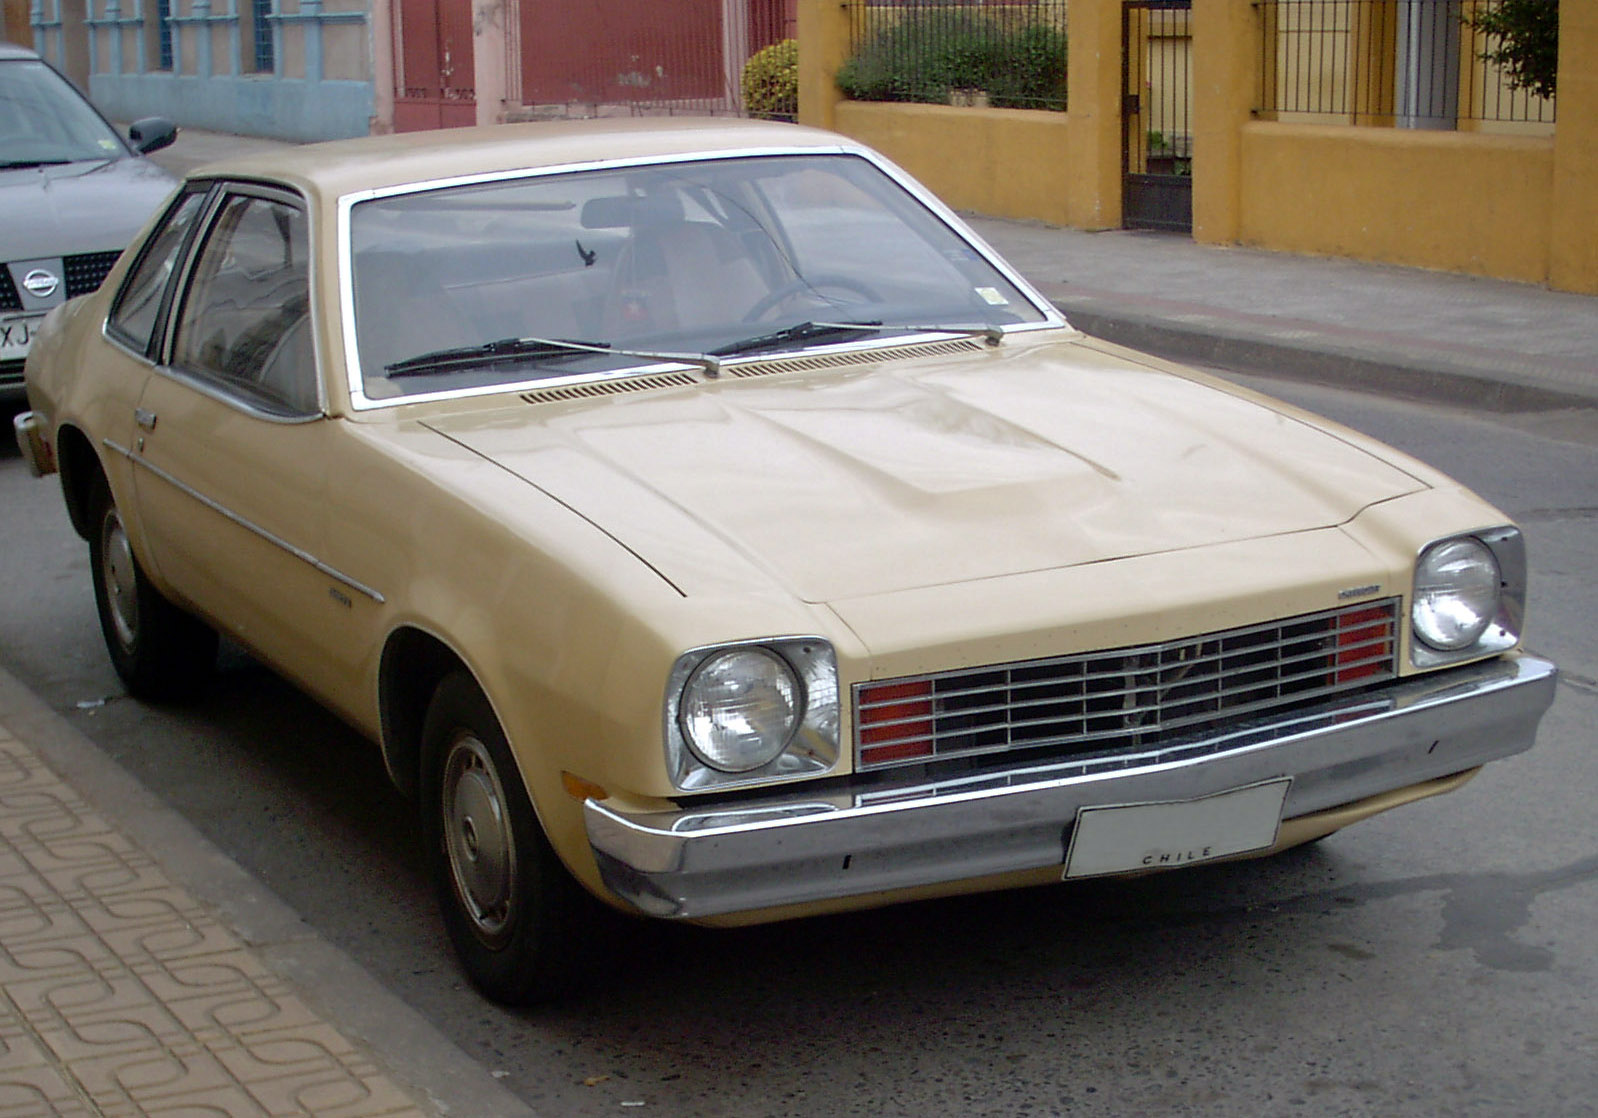 All Chevy 1977 chevrolet : File:1977 Chevrolet Monza Towne Coupe.jpg - Wikimedia Commons